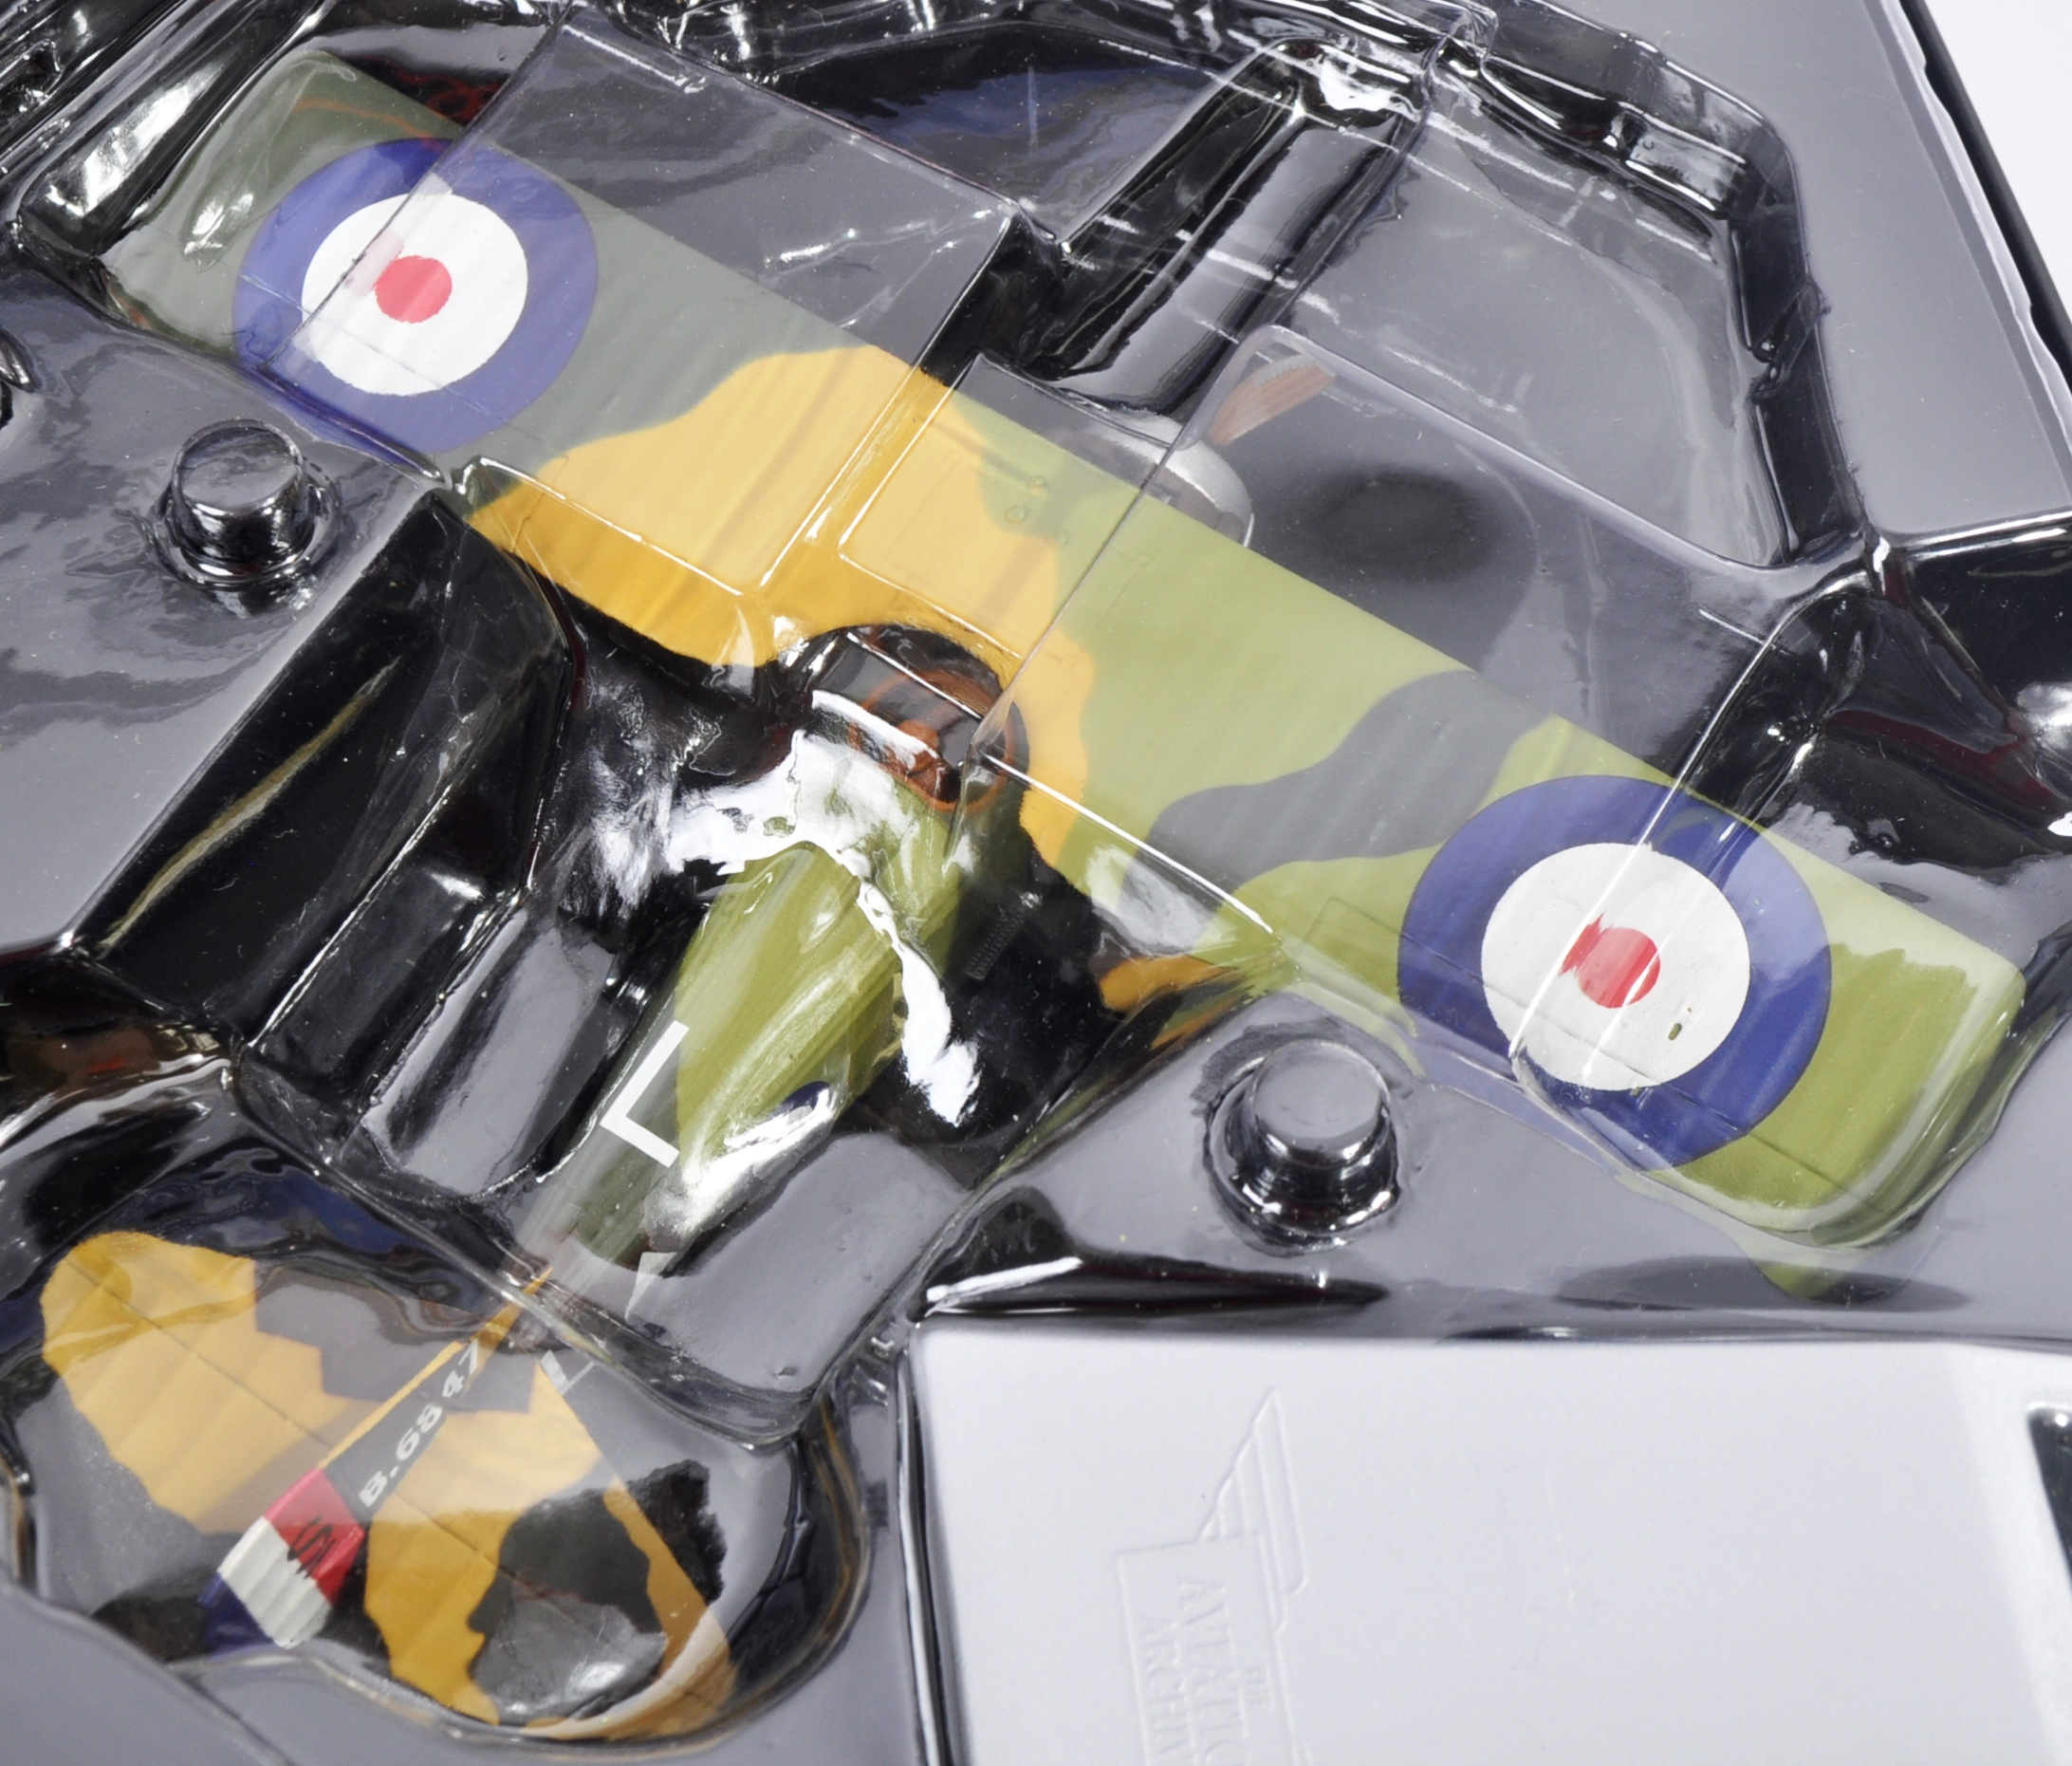 CORGI AVIATION ARCHIVE - TWO BOXED DIECAST MODELS - Image 3 of 6